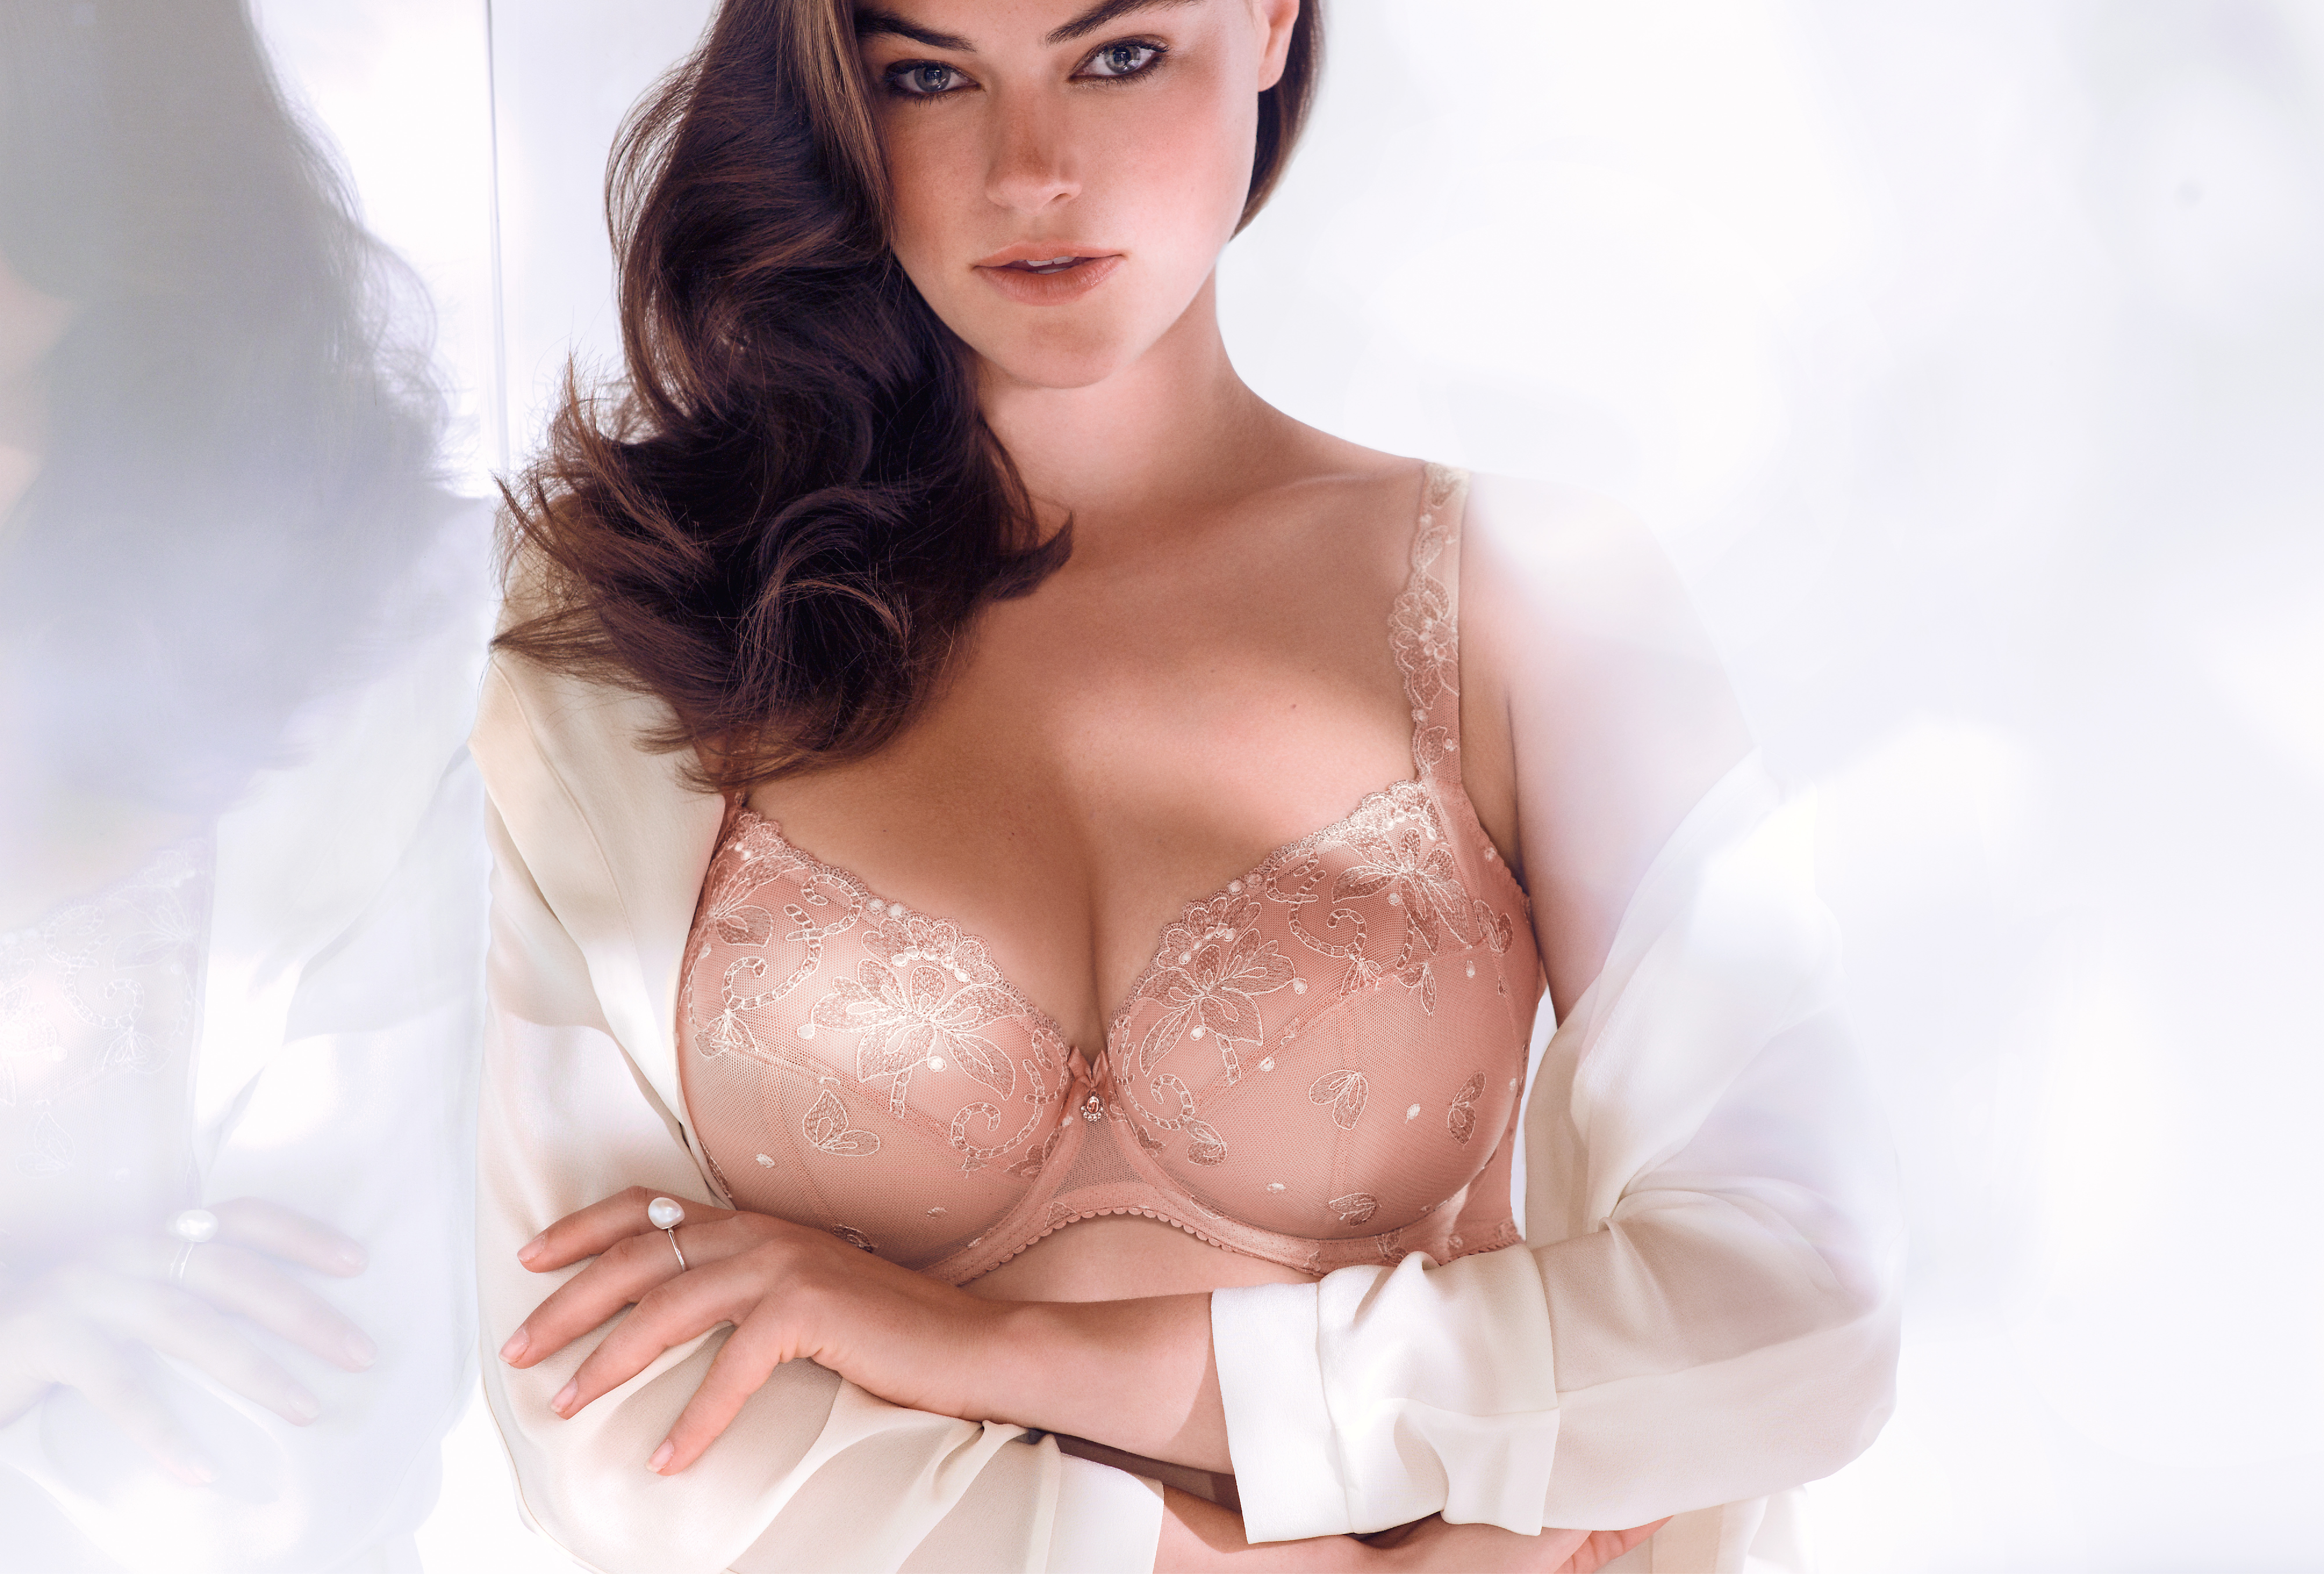 Model in white cloth and a pink bra